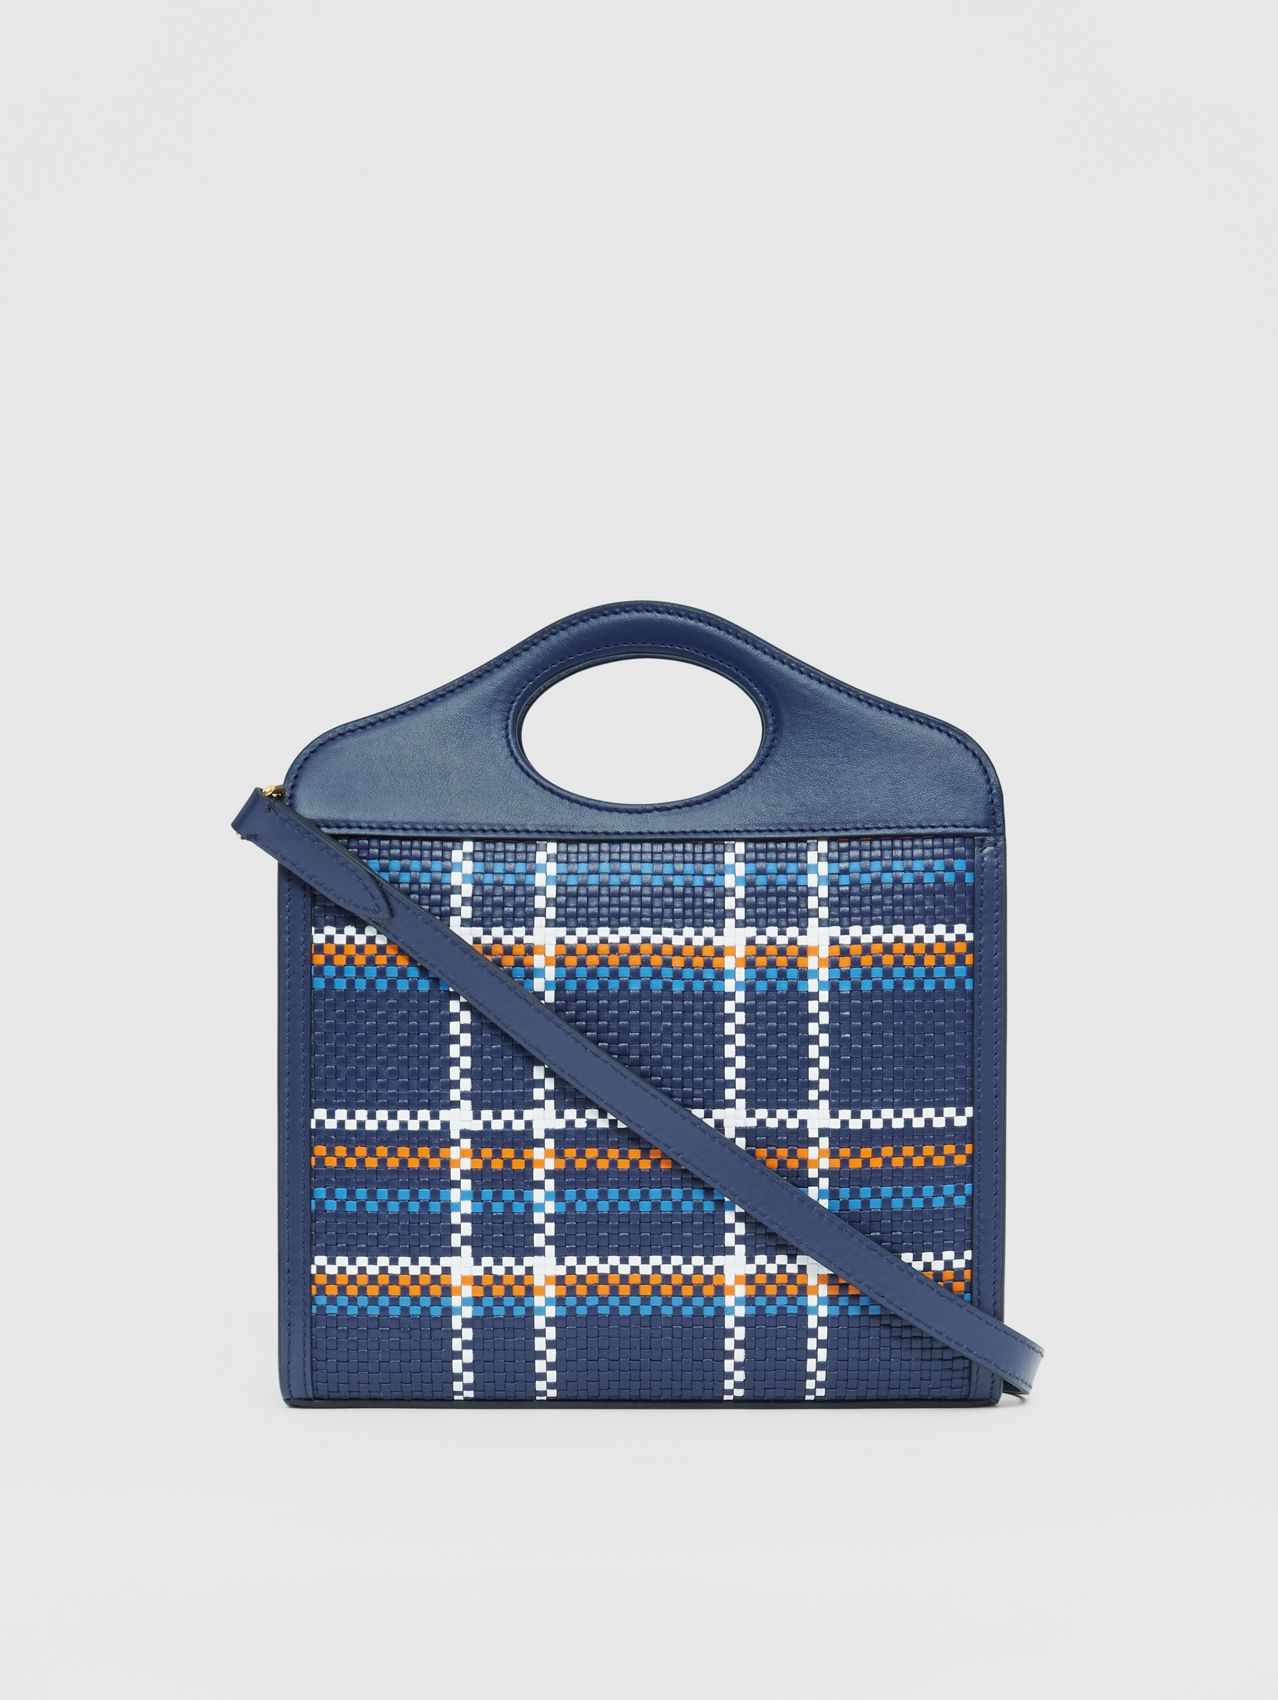 Mini Latticed Leather Pocket Bag in Blue/white/orange